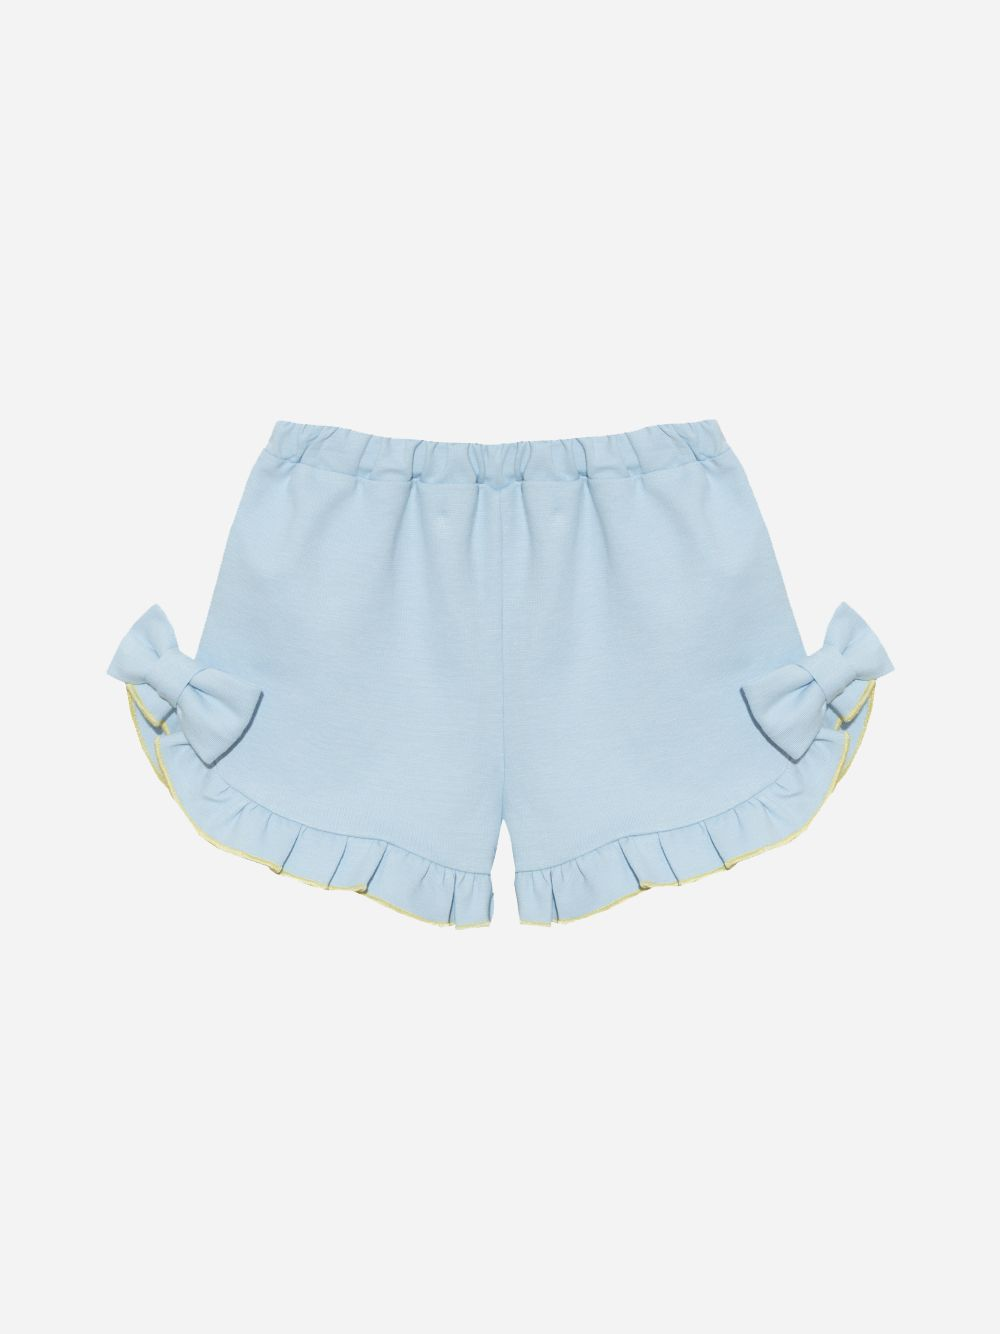 Patachou Interlock Blue Shorts